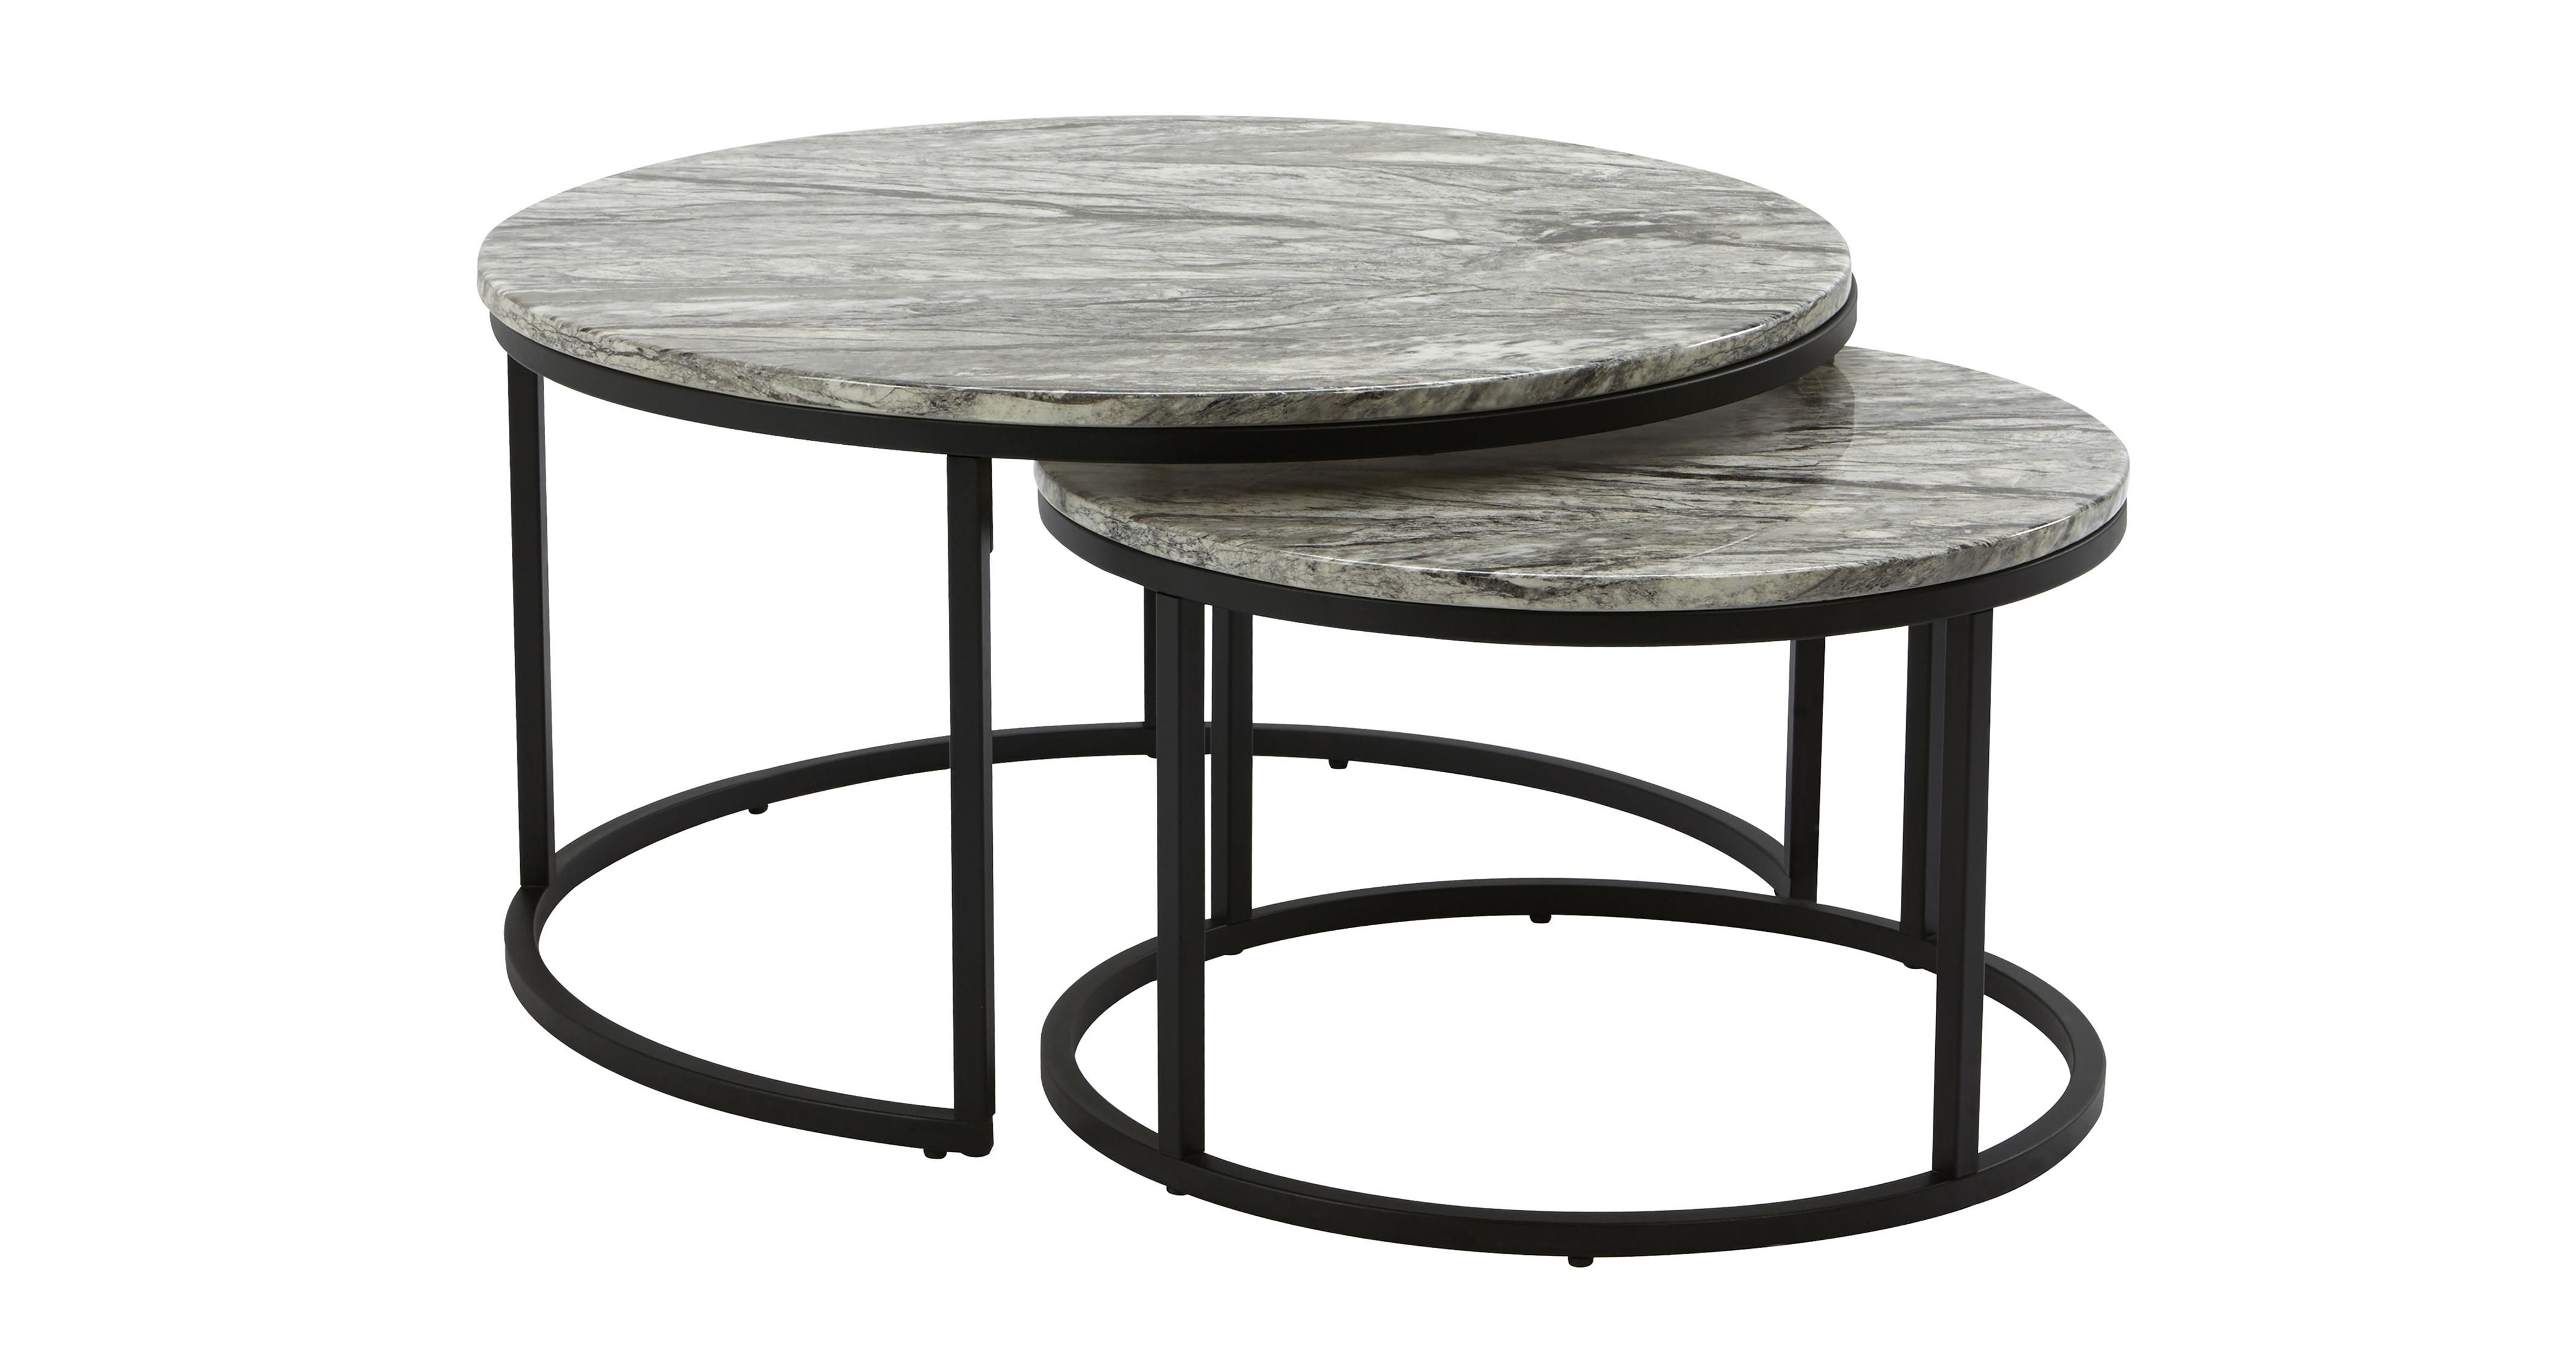 Halo Coffee Nest Coffee Tables Uk Coffee Table Nesting Coffee Tables [ 2268 x 4273 Pixel ]